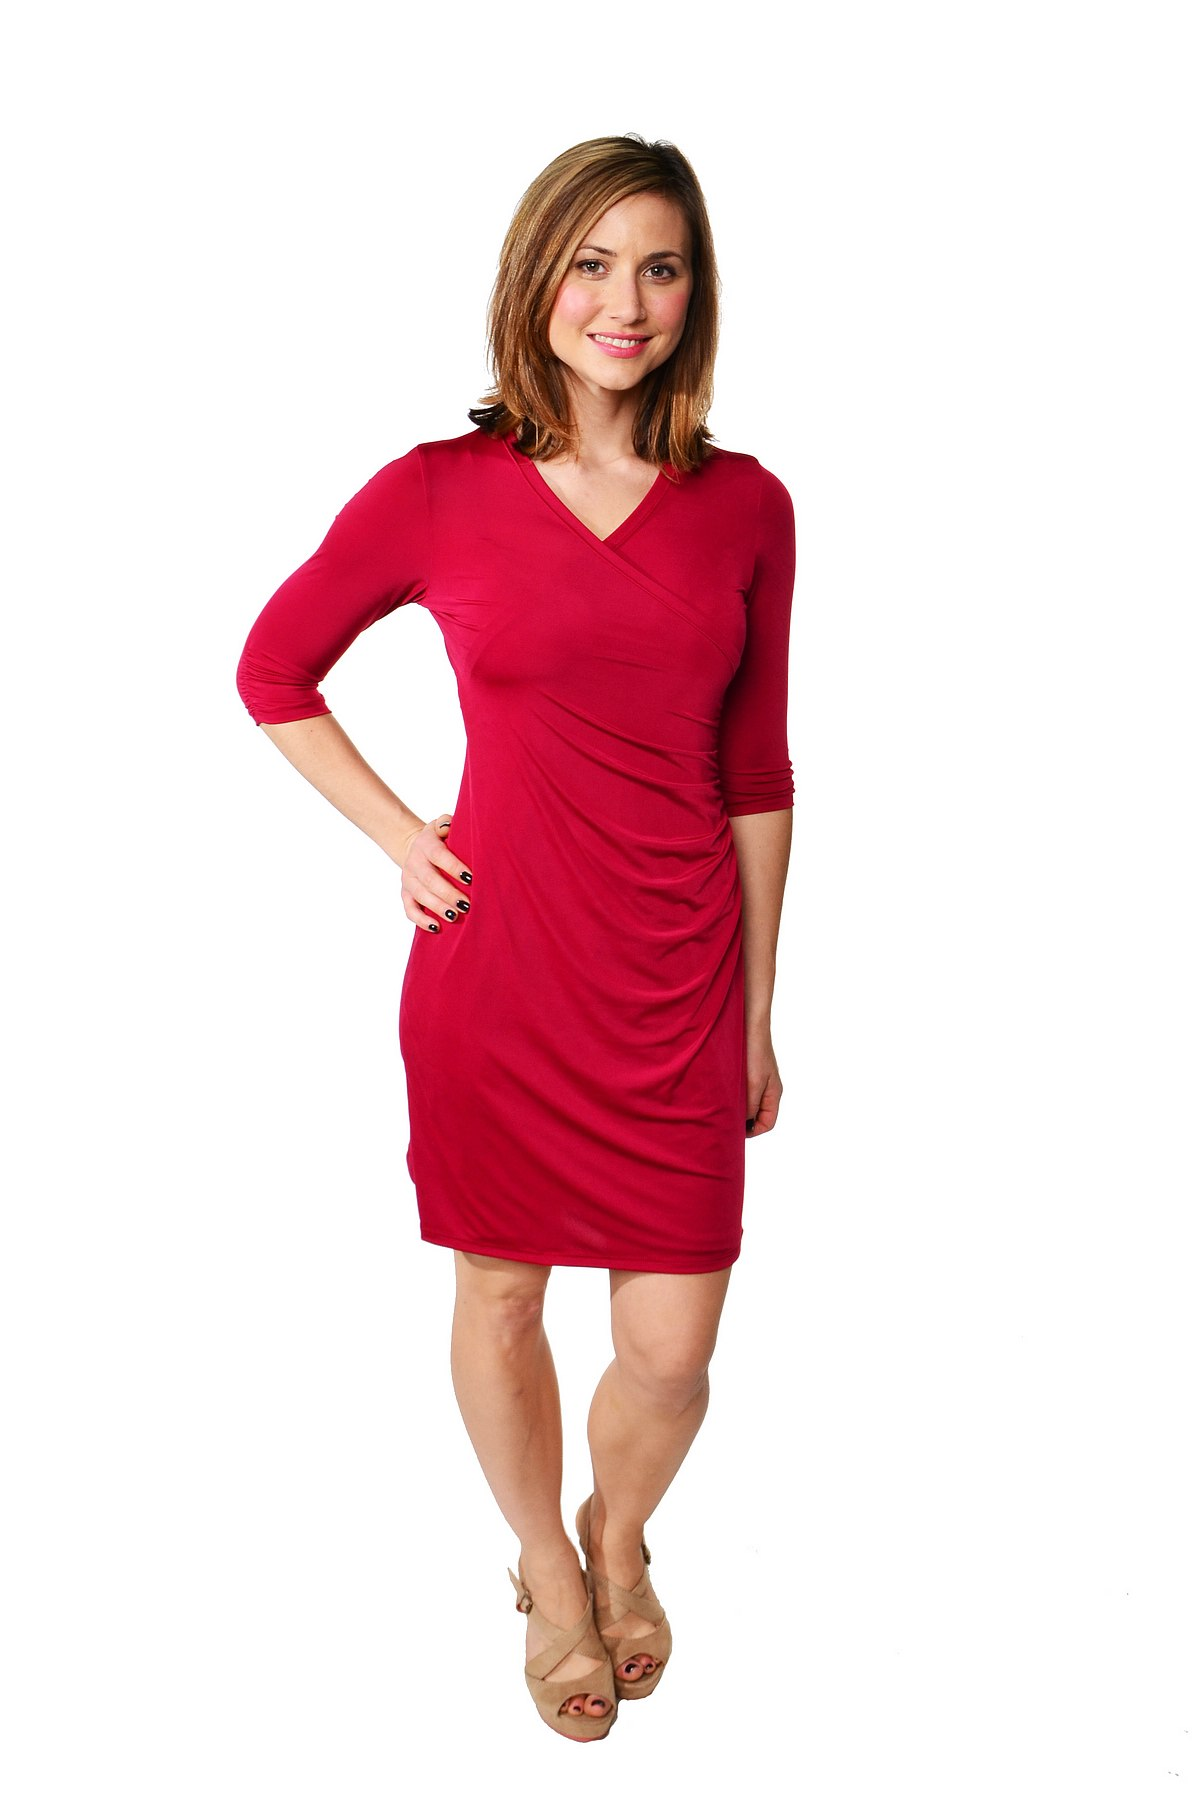 Kmart Womens Dresses With Beautiful Images In South Africa